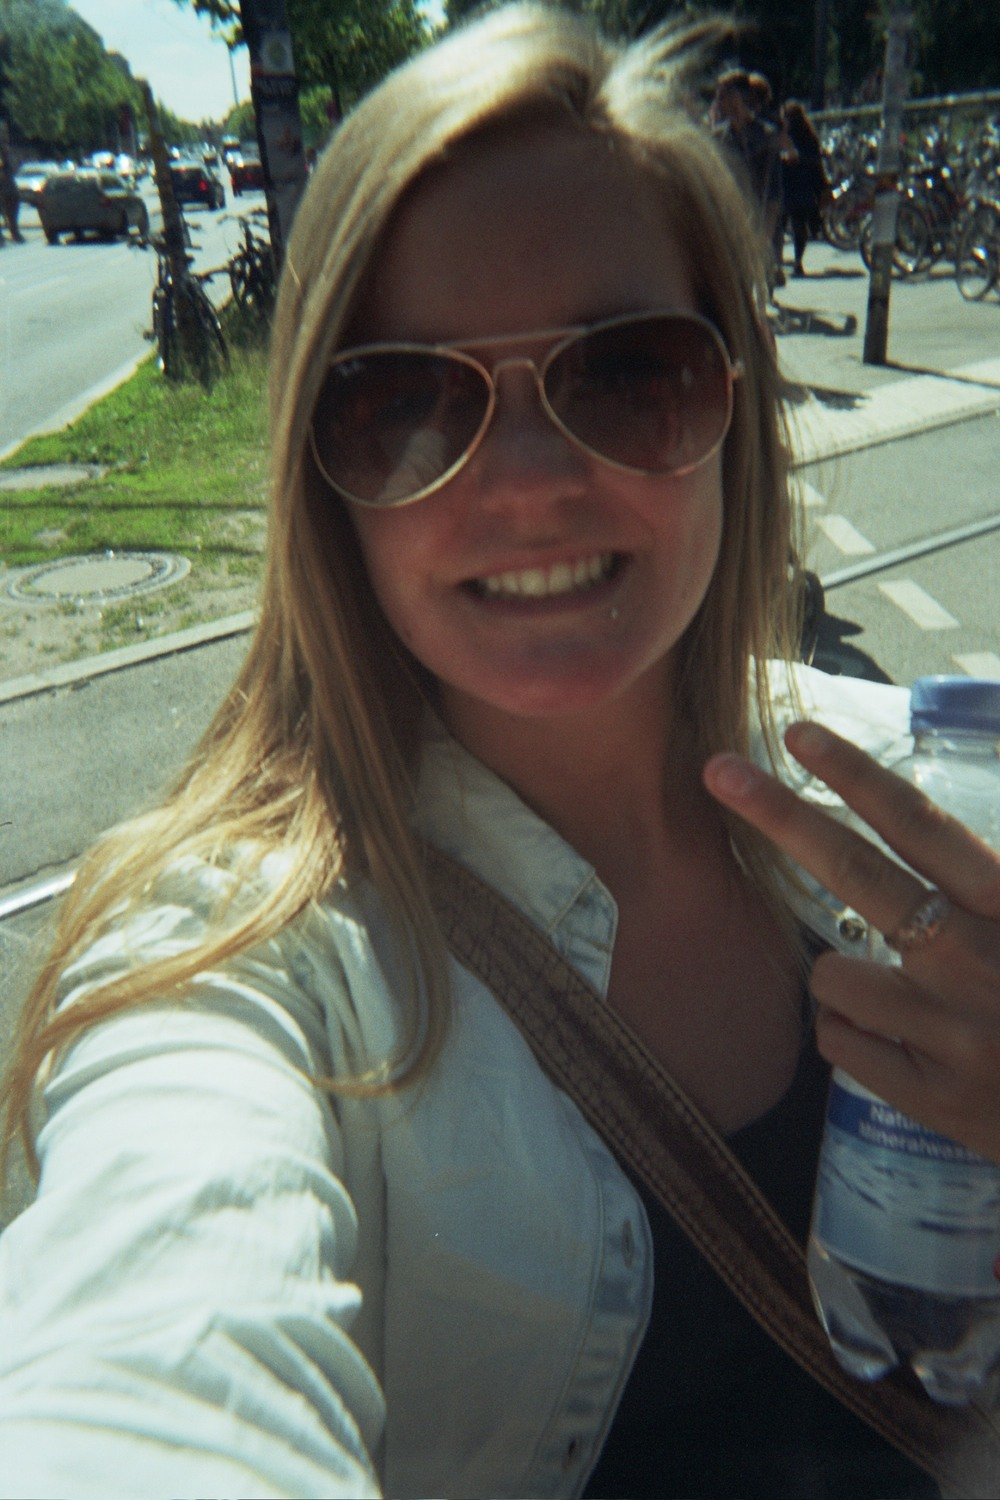 That's me. Clara. With a bottle of vodka disguised as the elixir of life. Yes I know, it's a selfie right in the middle of the road. But fuck it, life is cheap. And it's 30° out here. So why not?